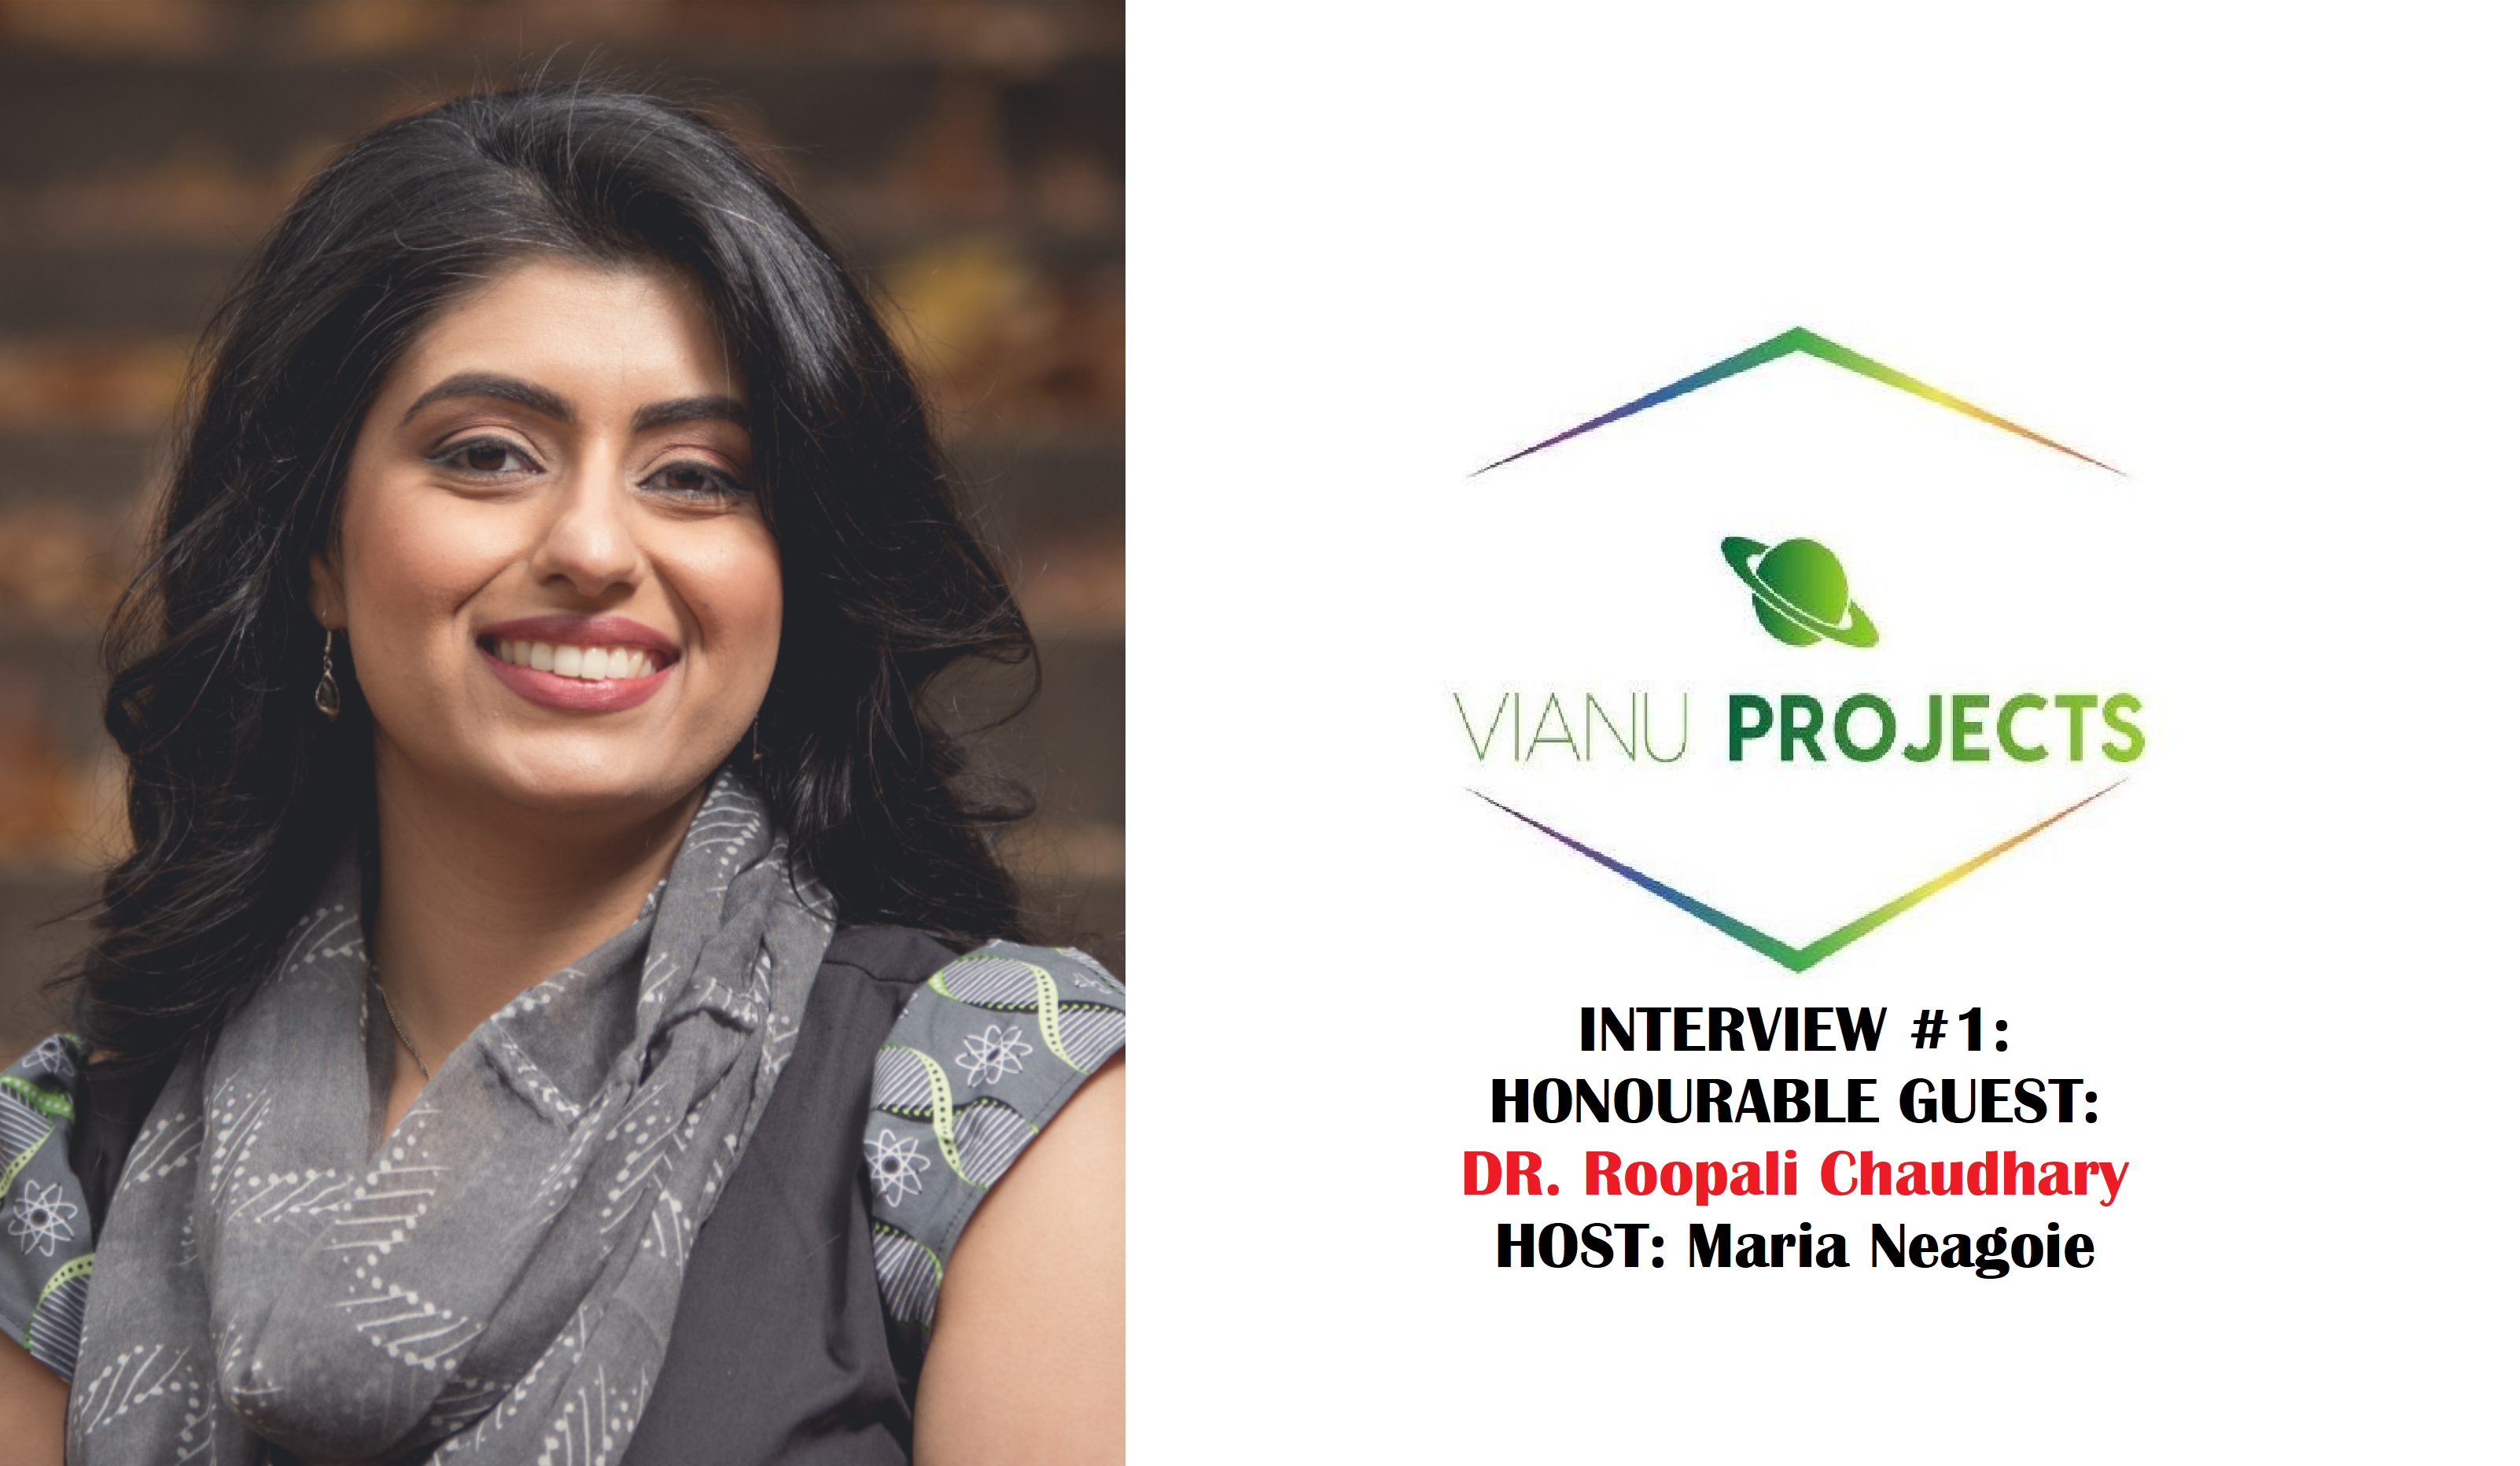 International Day of Women and Girls in Science – Interview with Dr. Roopali Chaudhary, Cell Biology Scientist & CEO of Lotus STEMM; by Maria Neagoie 🦠